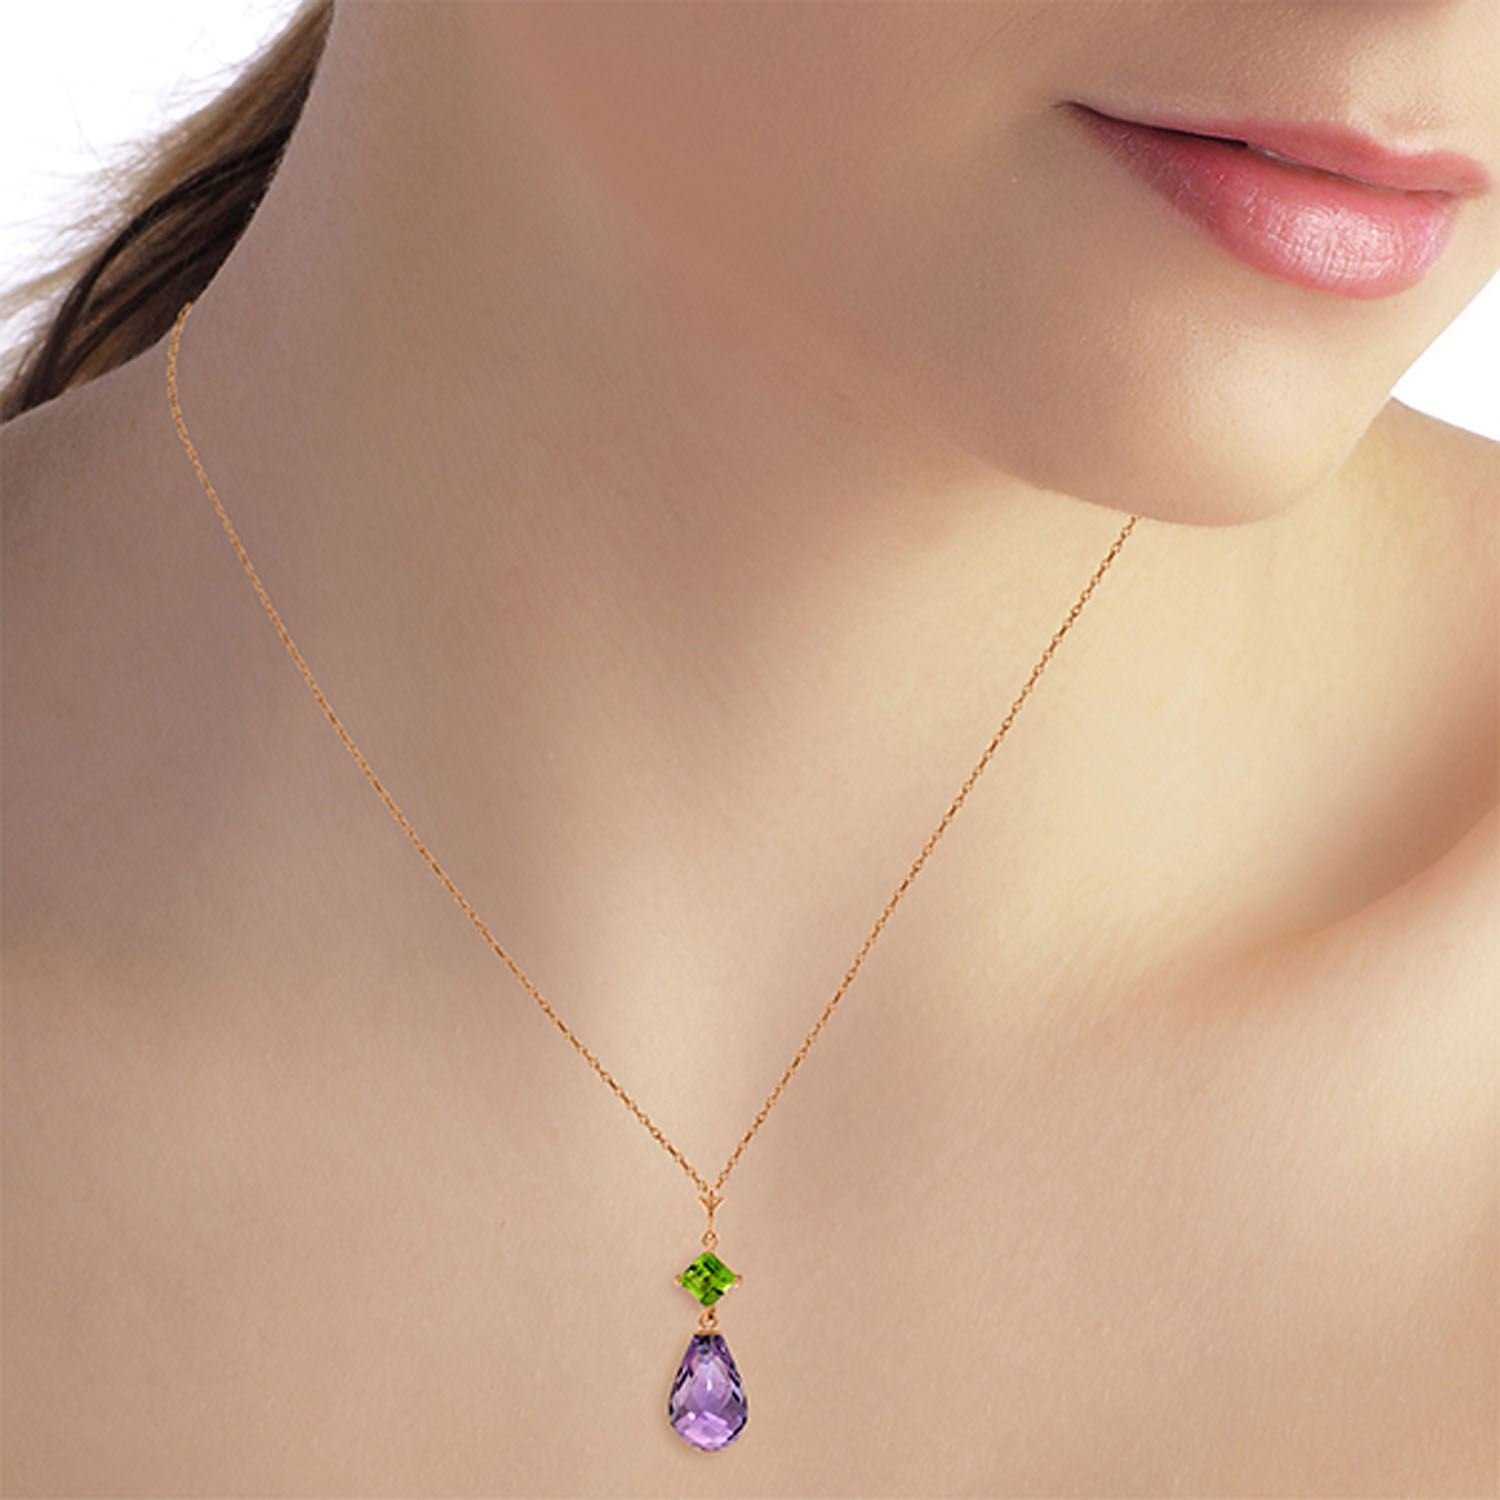 ALARRI 14K Solid Rose Gold Necklace w// Peridot /& Purple Amethyst with 22 Inch Chain Length